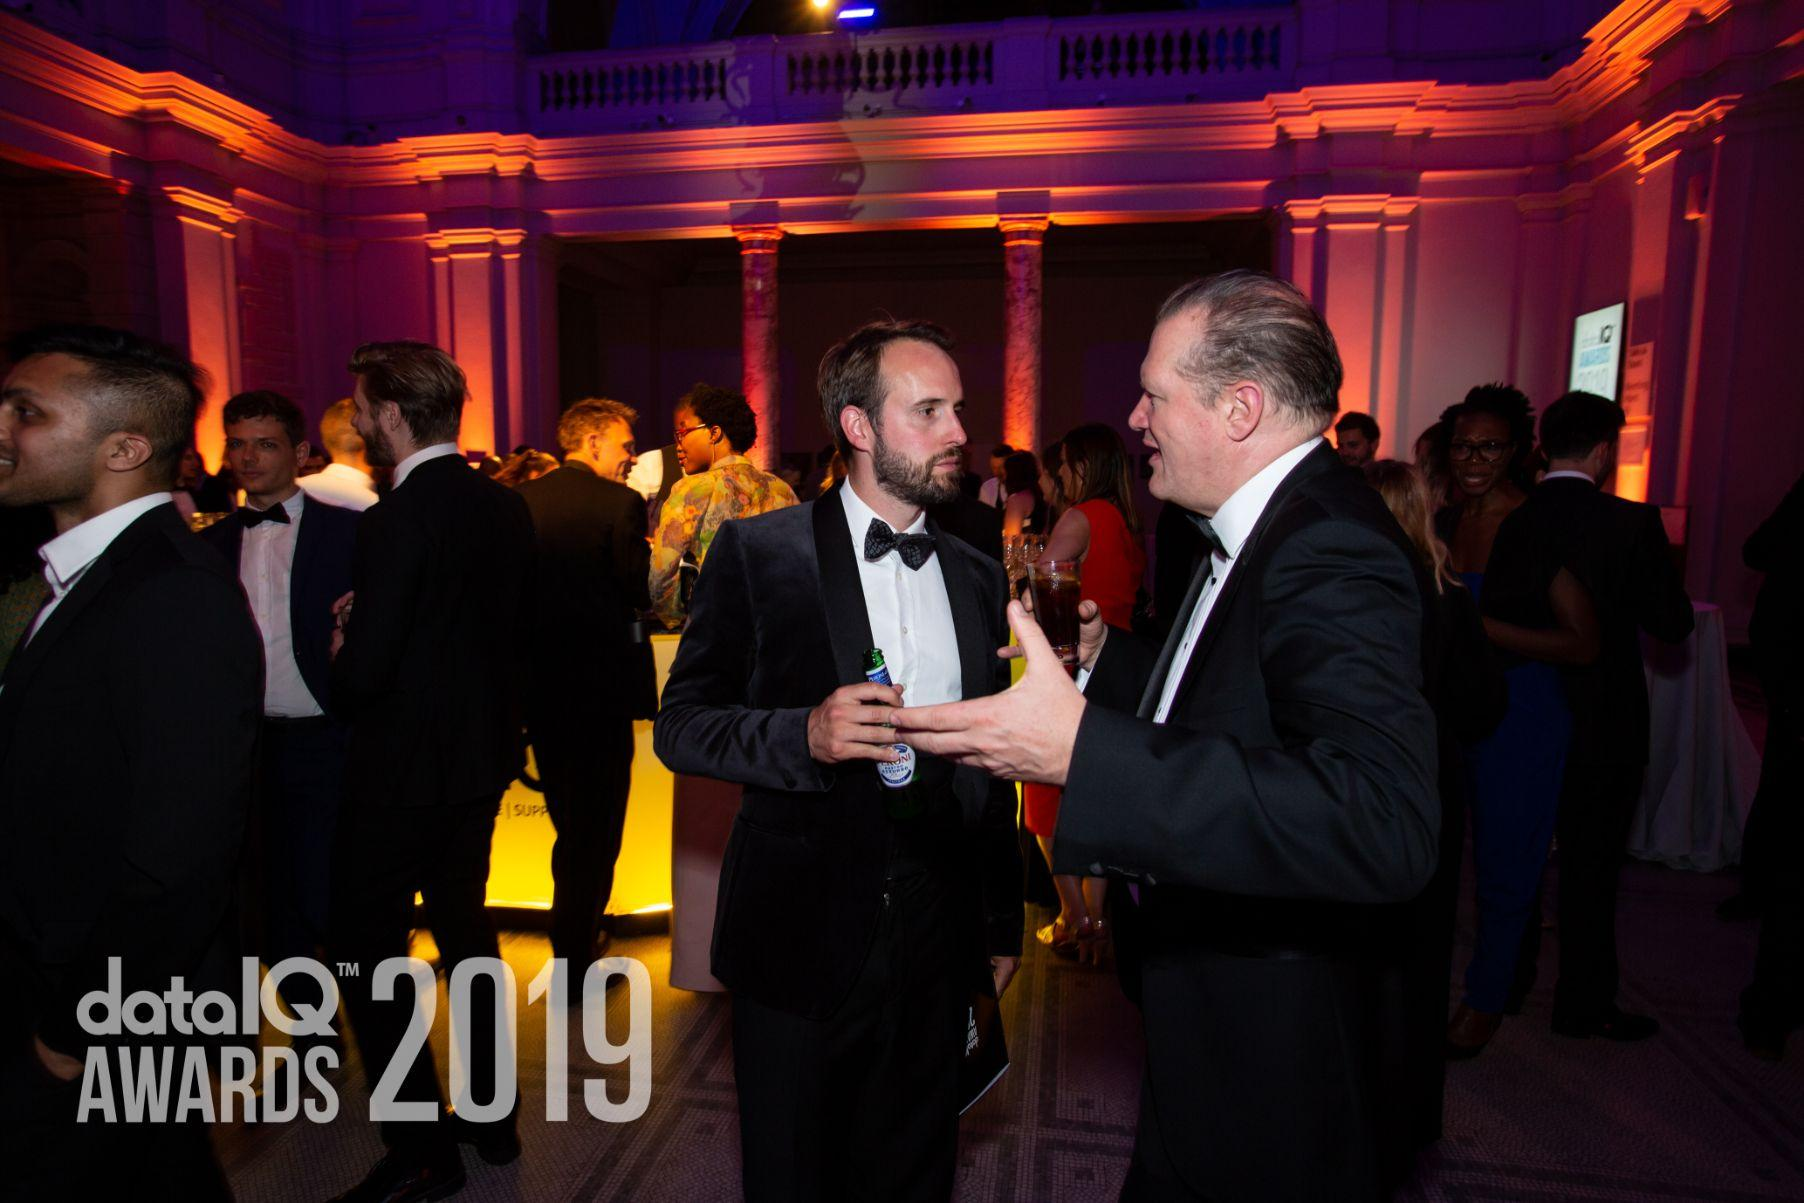 Awards 2019 Image 65